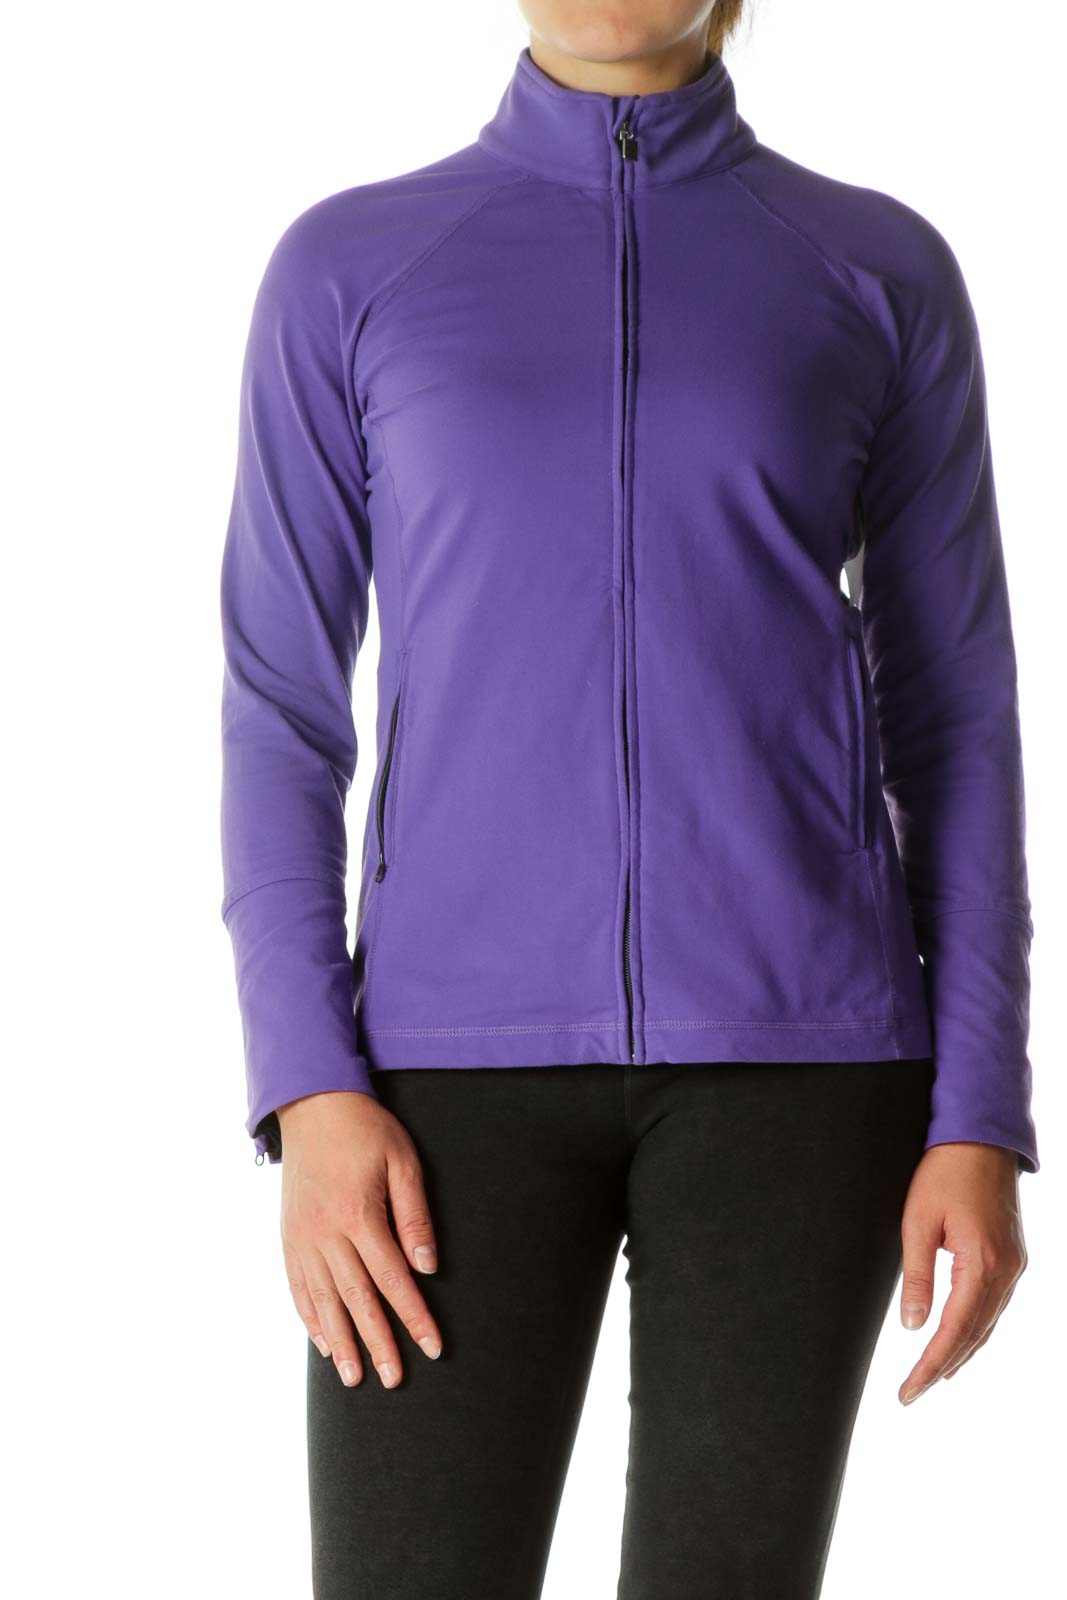 Purple Zippered Pocketed Sports Jacket Front